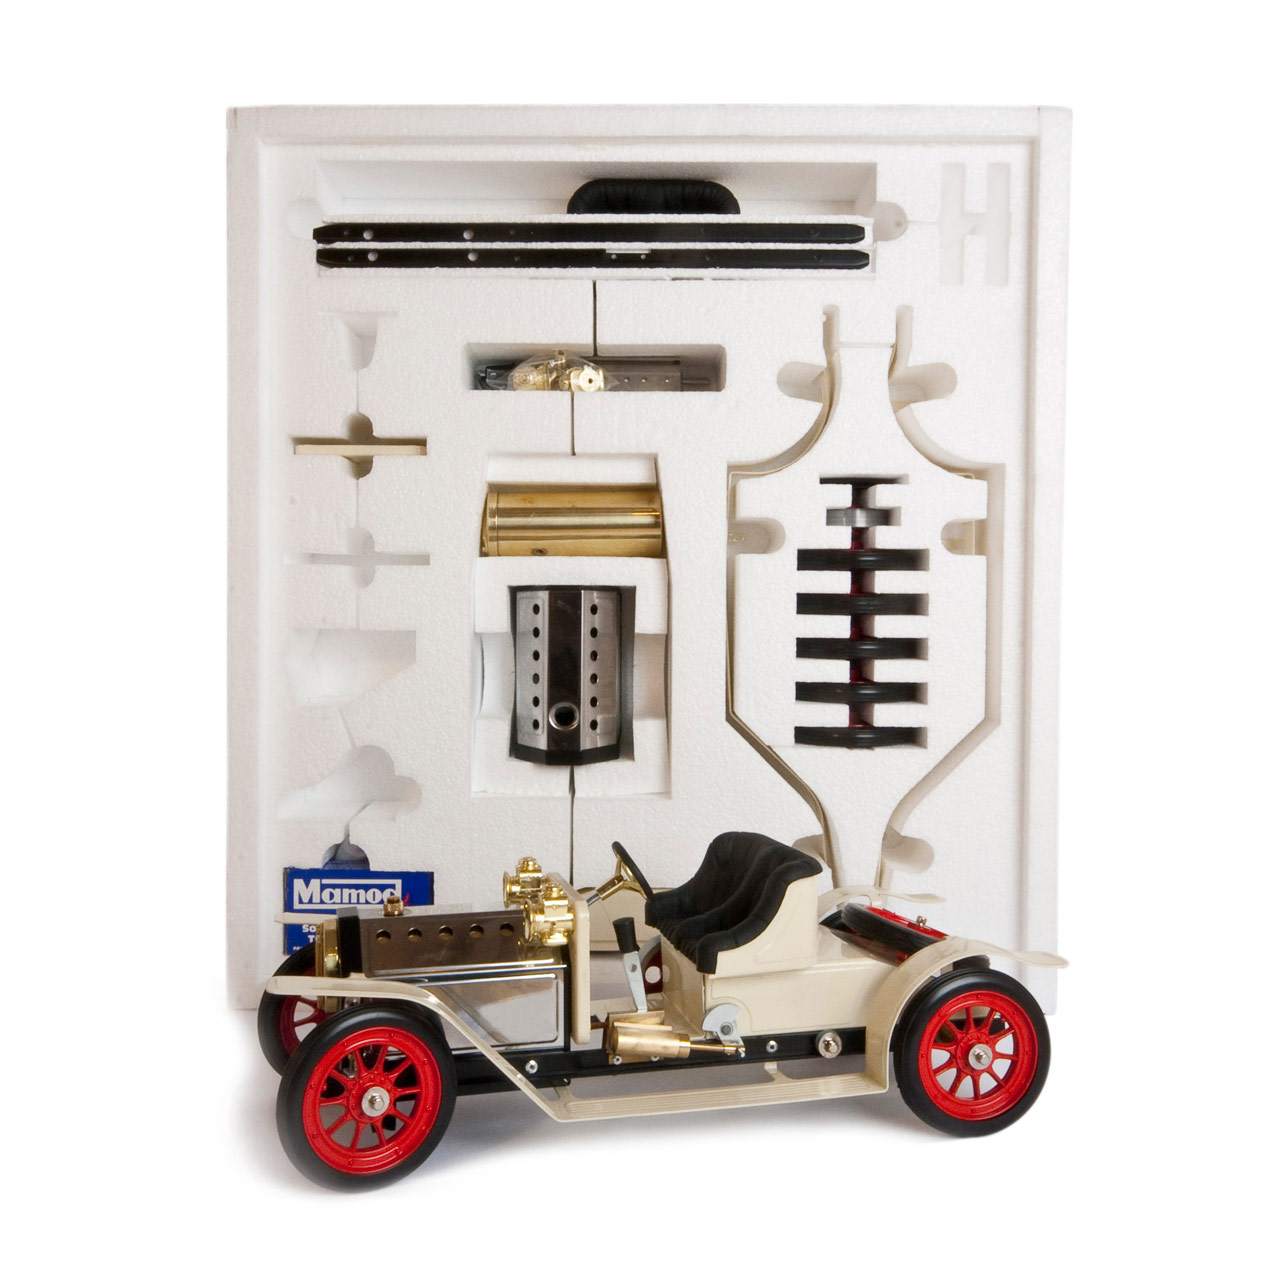 Mamod Live Steam Engines - Mamod Steam Roadster Kit